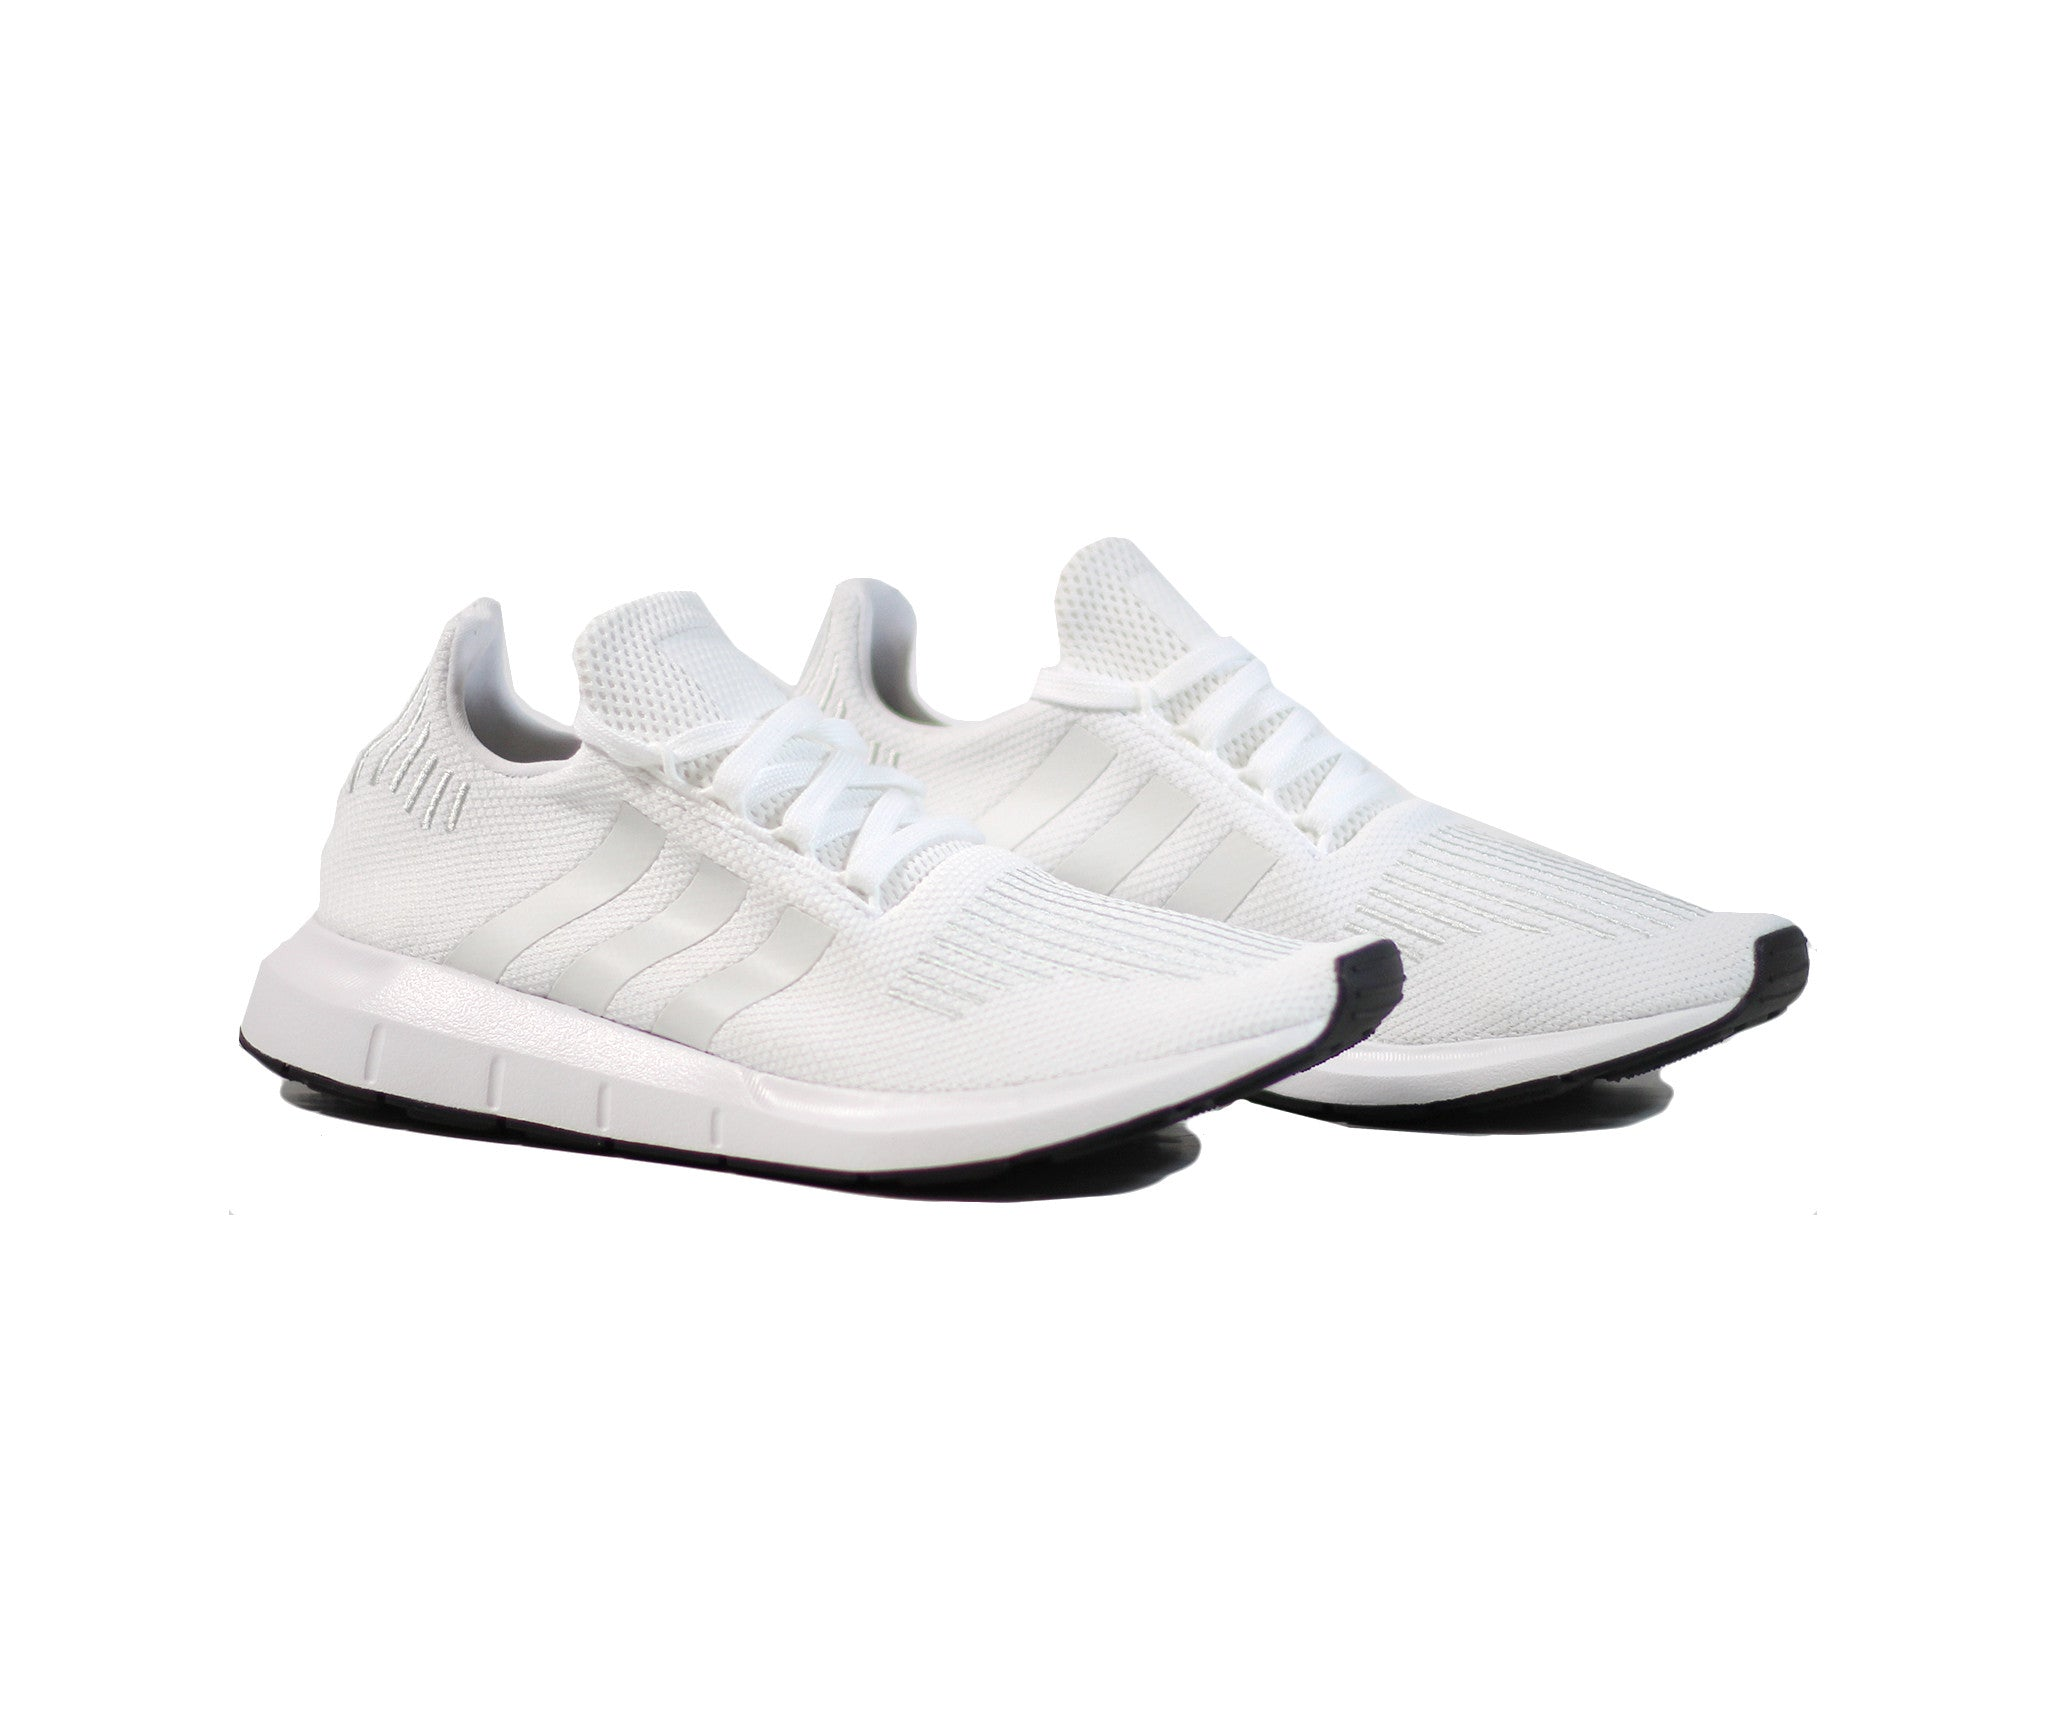 Adidas Swift Run - White White – History of New York Powered by  Sneaker  Lounge eff31f22ec3a9